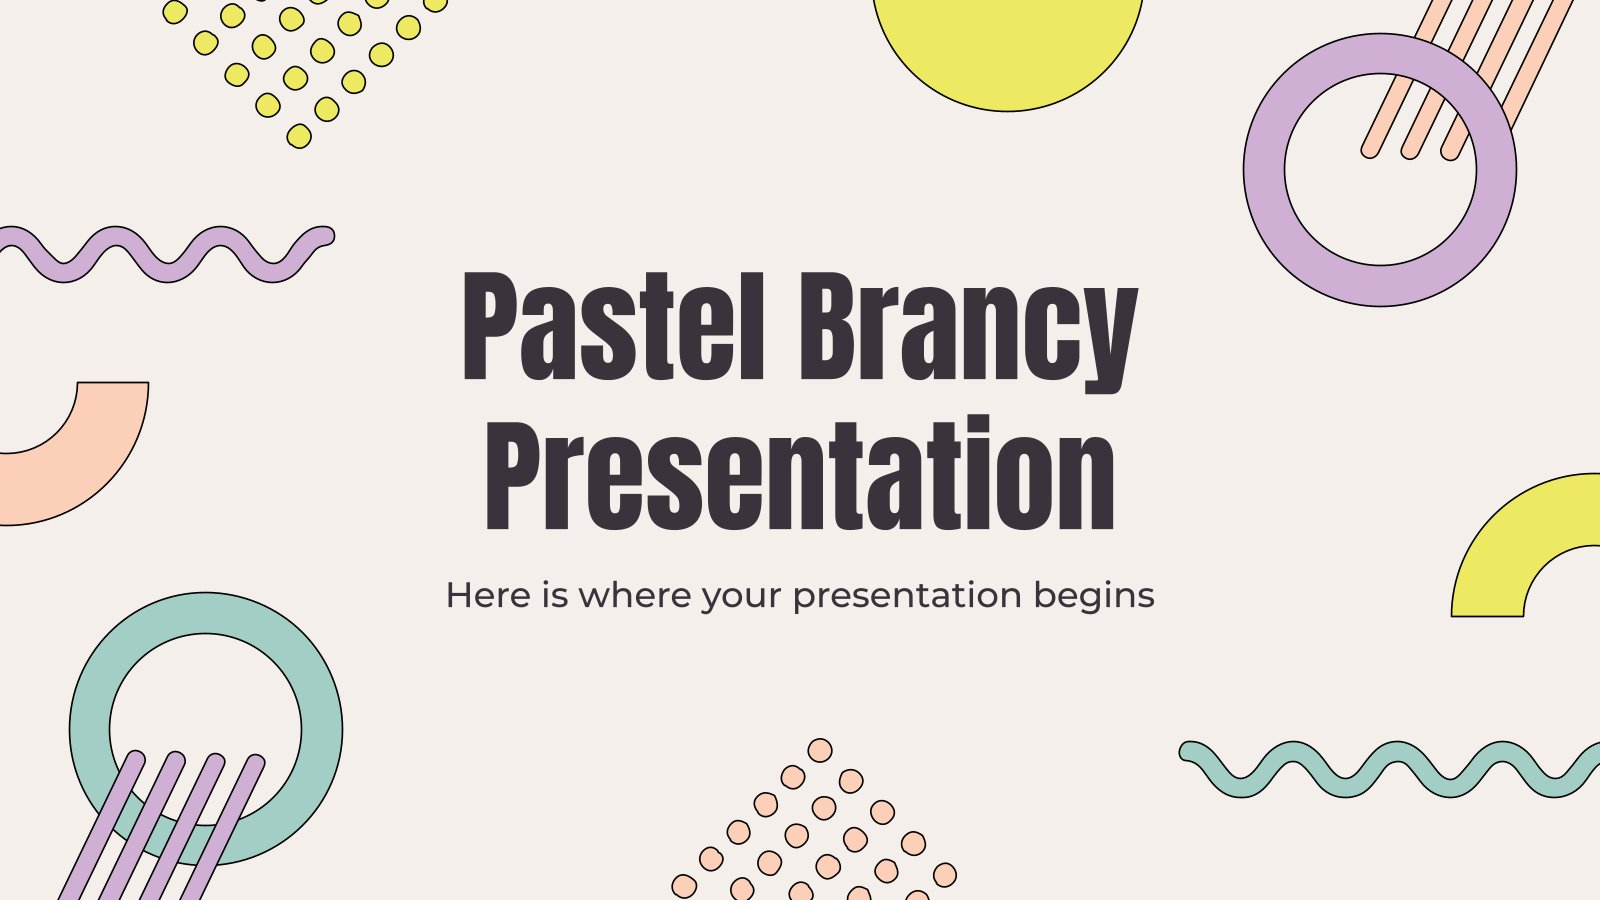 Pastel Brancy presentation template